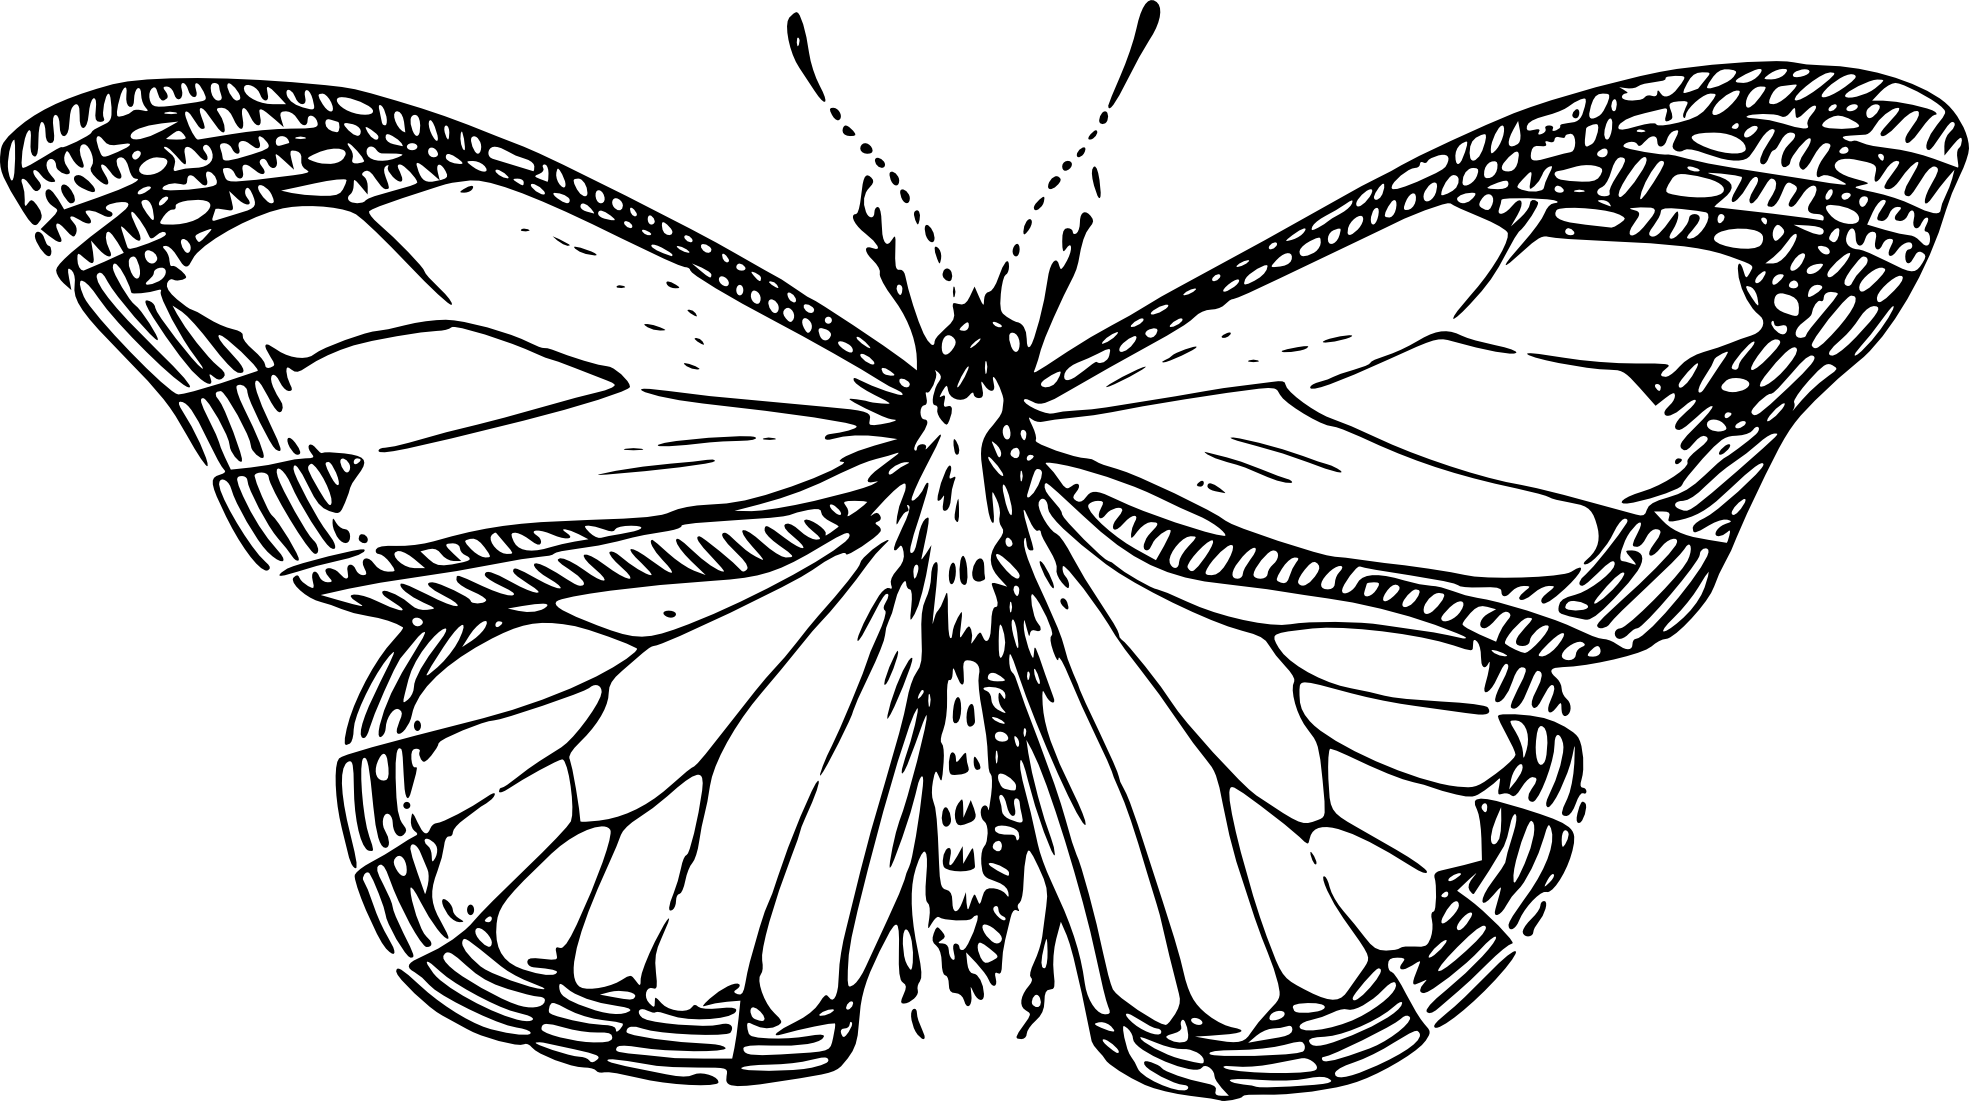 Vector Drawing Lines Game : Butterfly net drawing clipart panda free images